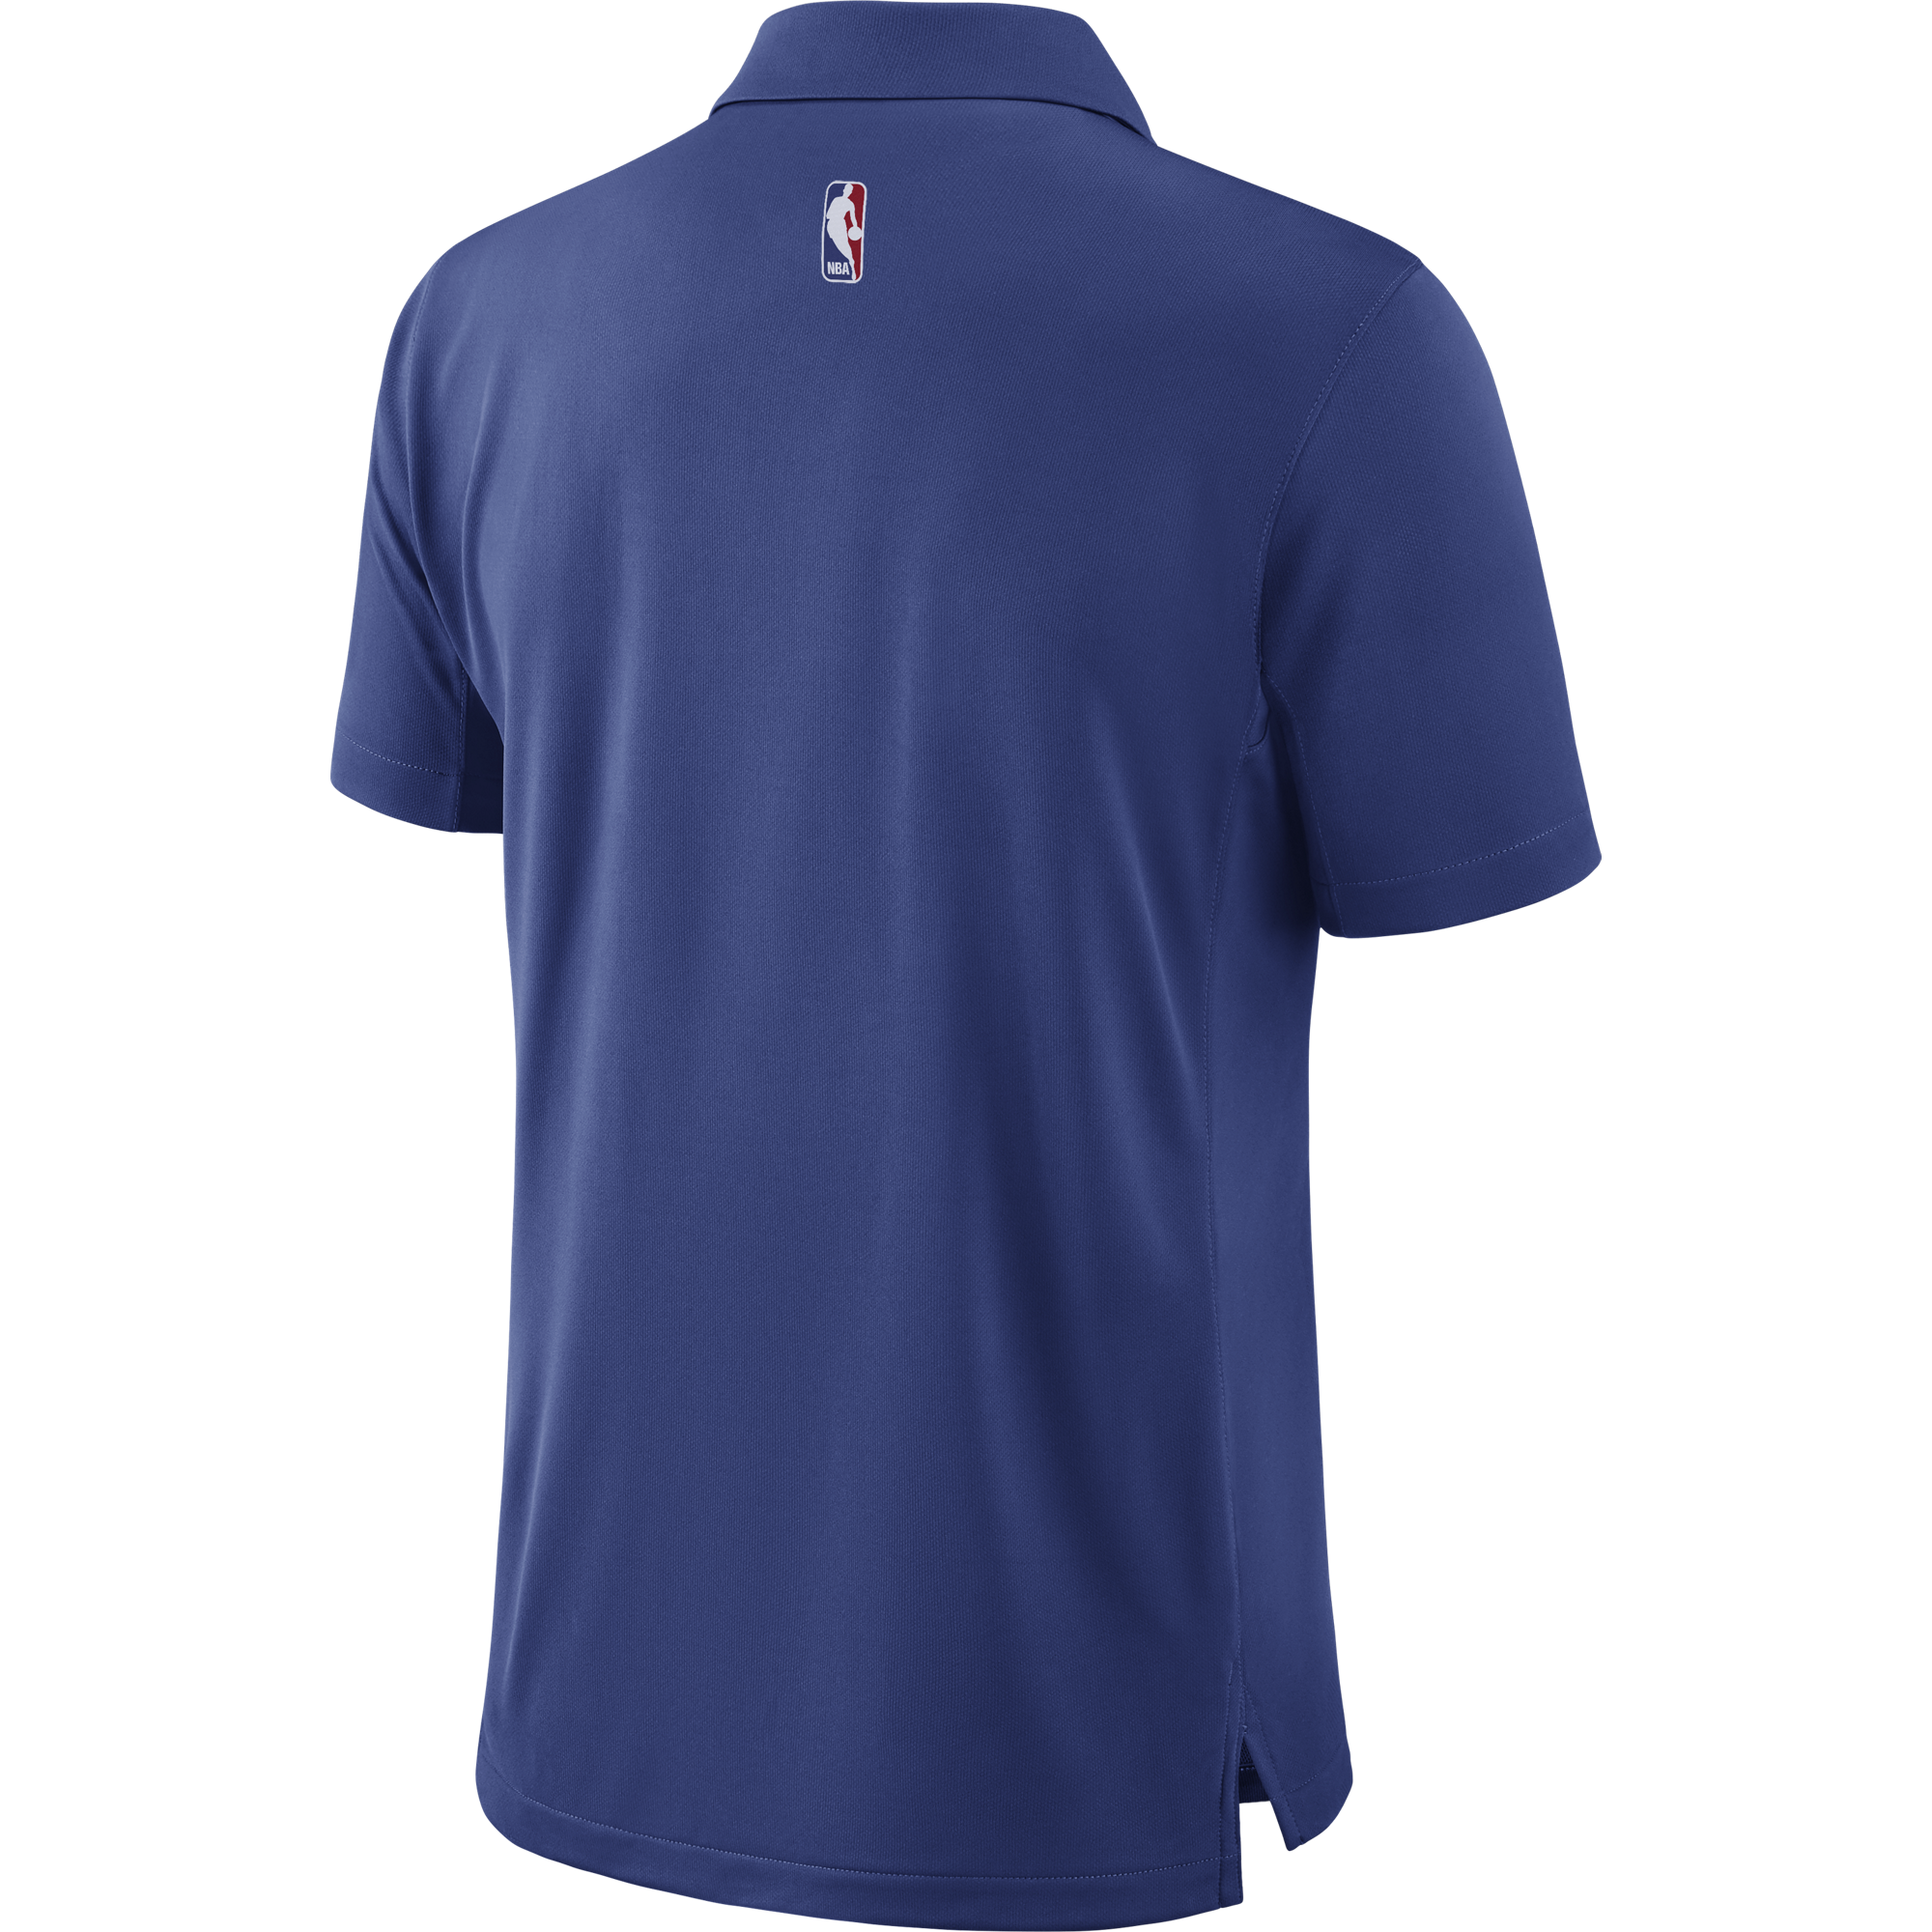 detailed look 7c8f5 665c7 Philadelphia 76ers Men s Classic Rush Polo by Nike